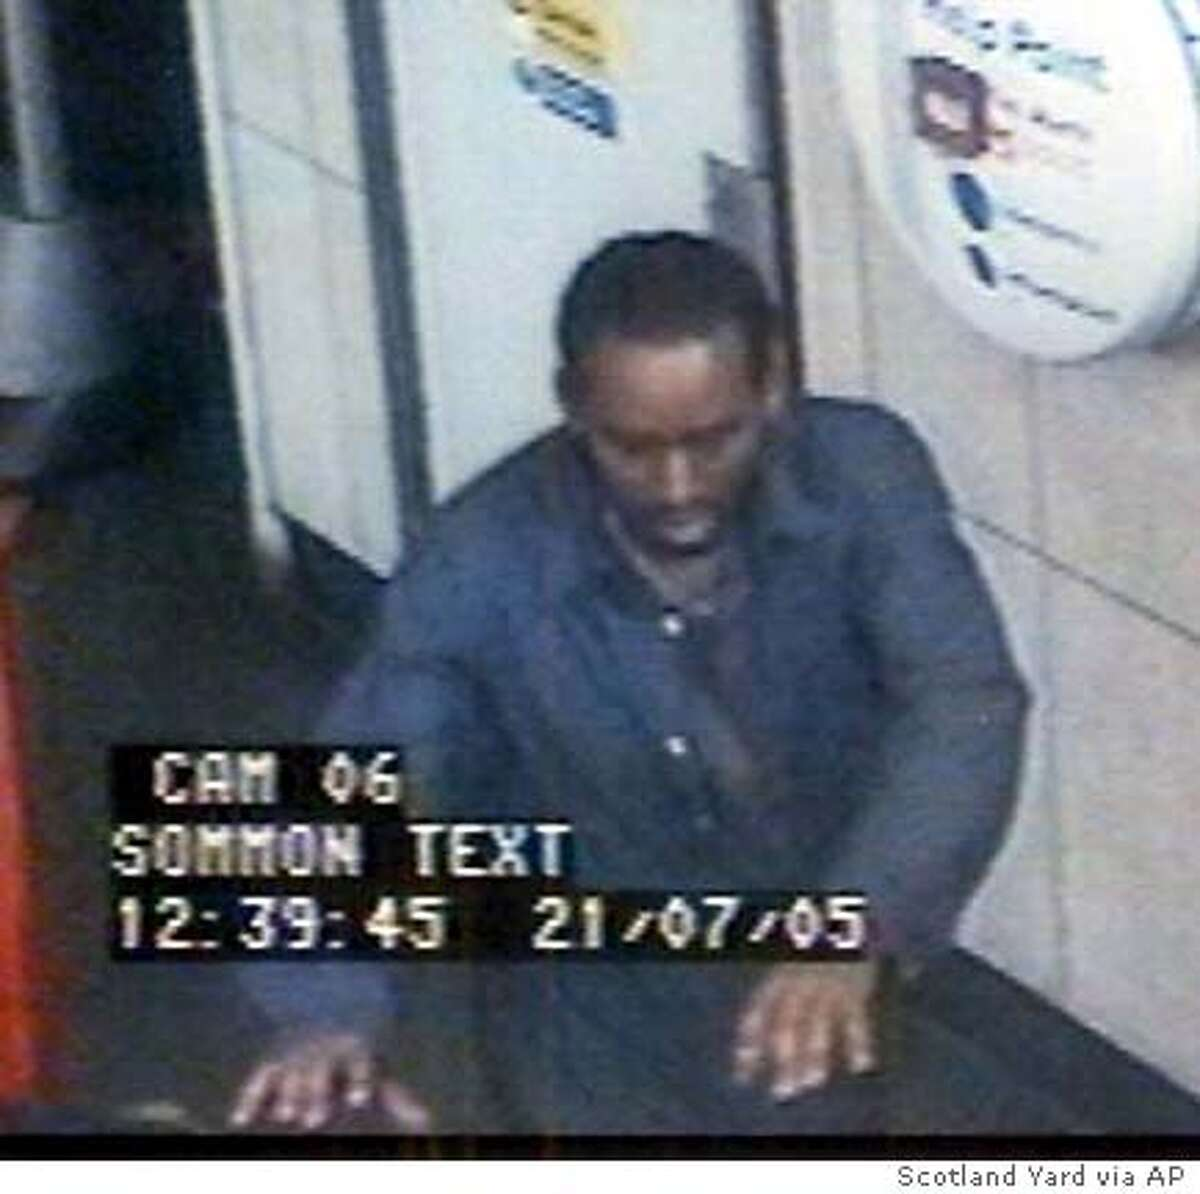 ** FILE ** Picture released by Scotland Yard of a man - named by detectives Monday July 25, 2005, as Yasin Hassan Omar - who police wish to question in connection with the four suspected suicide attacks on three Tube trains and a bus Thursday, July 21, 2005 in London. This image was taken at Warren Street - one of the three tube stations involved. Police stormed a house before dawn Wednesday July 27, 2005 and fired a stun gun to subdue a man that a witness and media reports said was Somali-born Yasin Hassan Omar, one of four men believed to have carried out the failed July 21 bombings of London's Transport system. (AP Photo/ Metropolitan Police) ** **